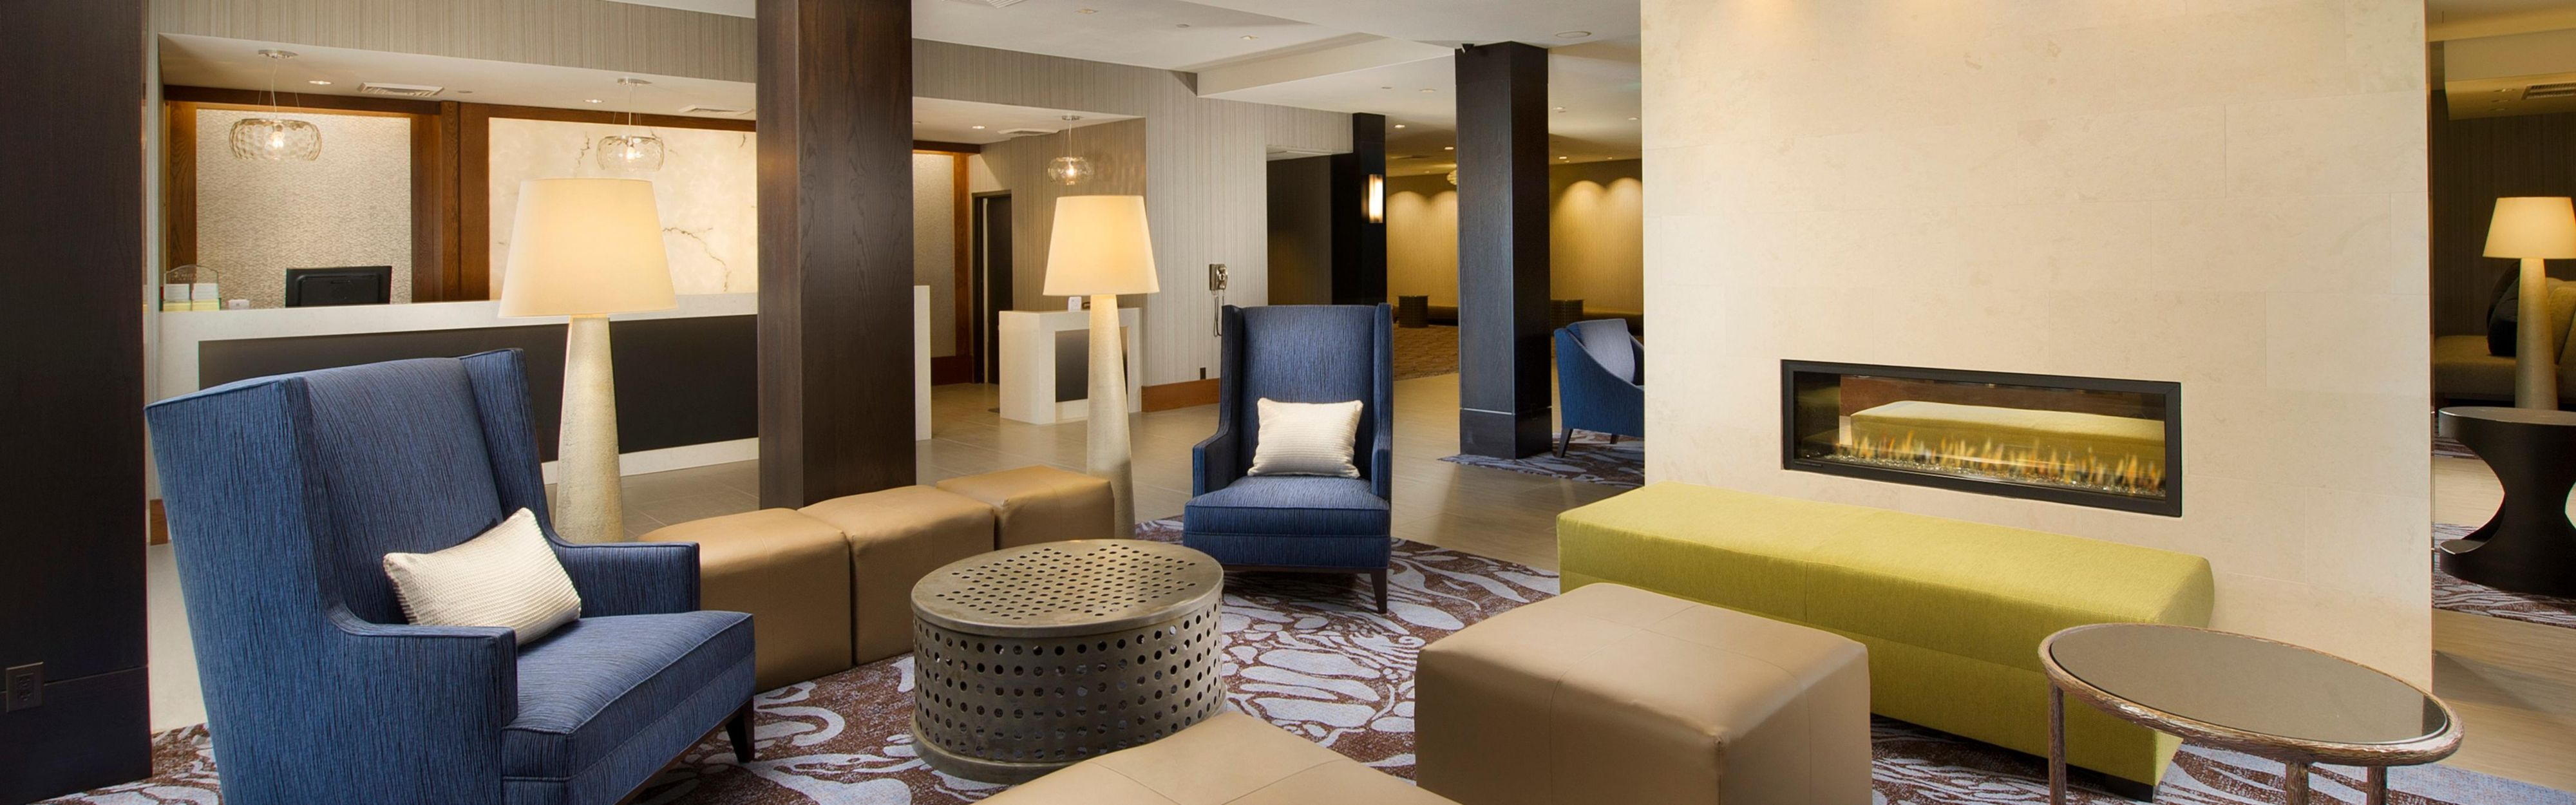 Crowne Plaza Seattle Airport image 0